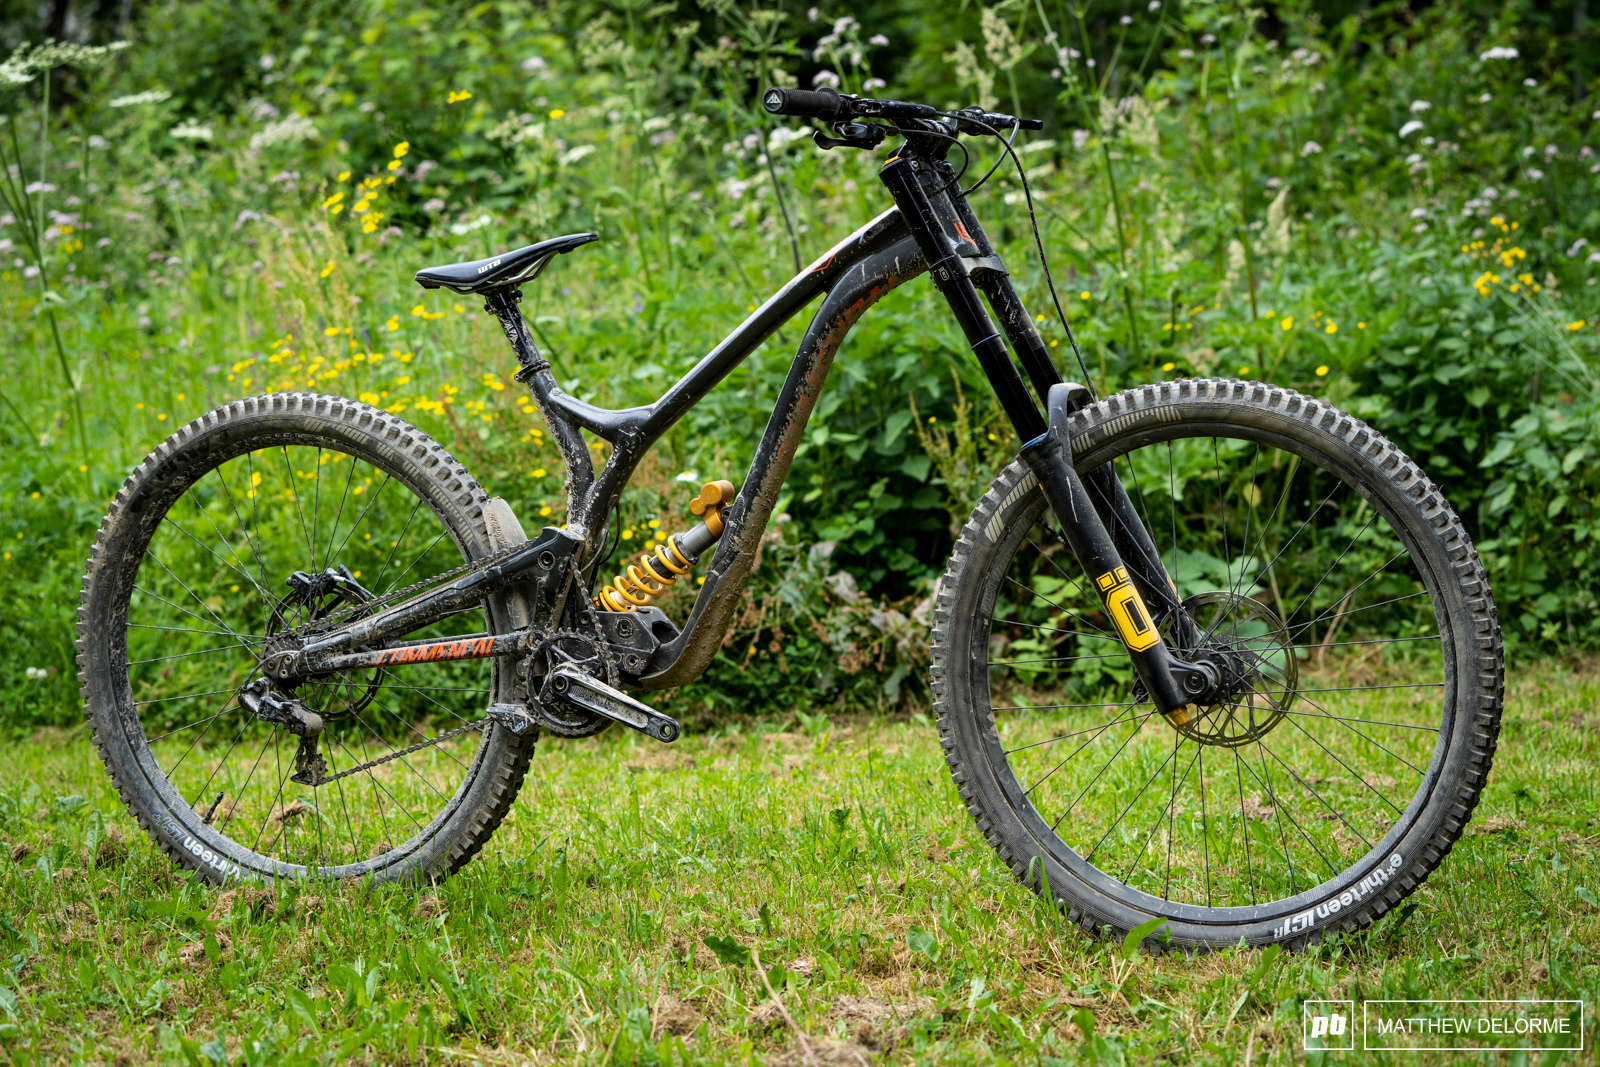 3c51e645c29 Öhlins released their DH38 Downhill Race fork last week and you can read  all about it in the 'First Look' article. More importantly, I managed to  bust out a ...